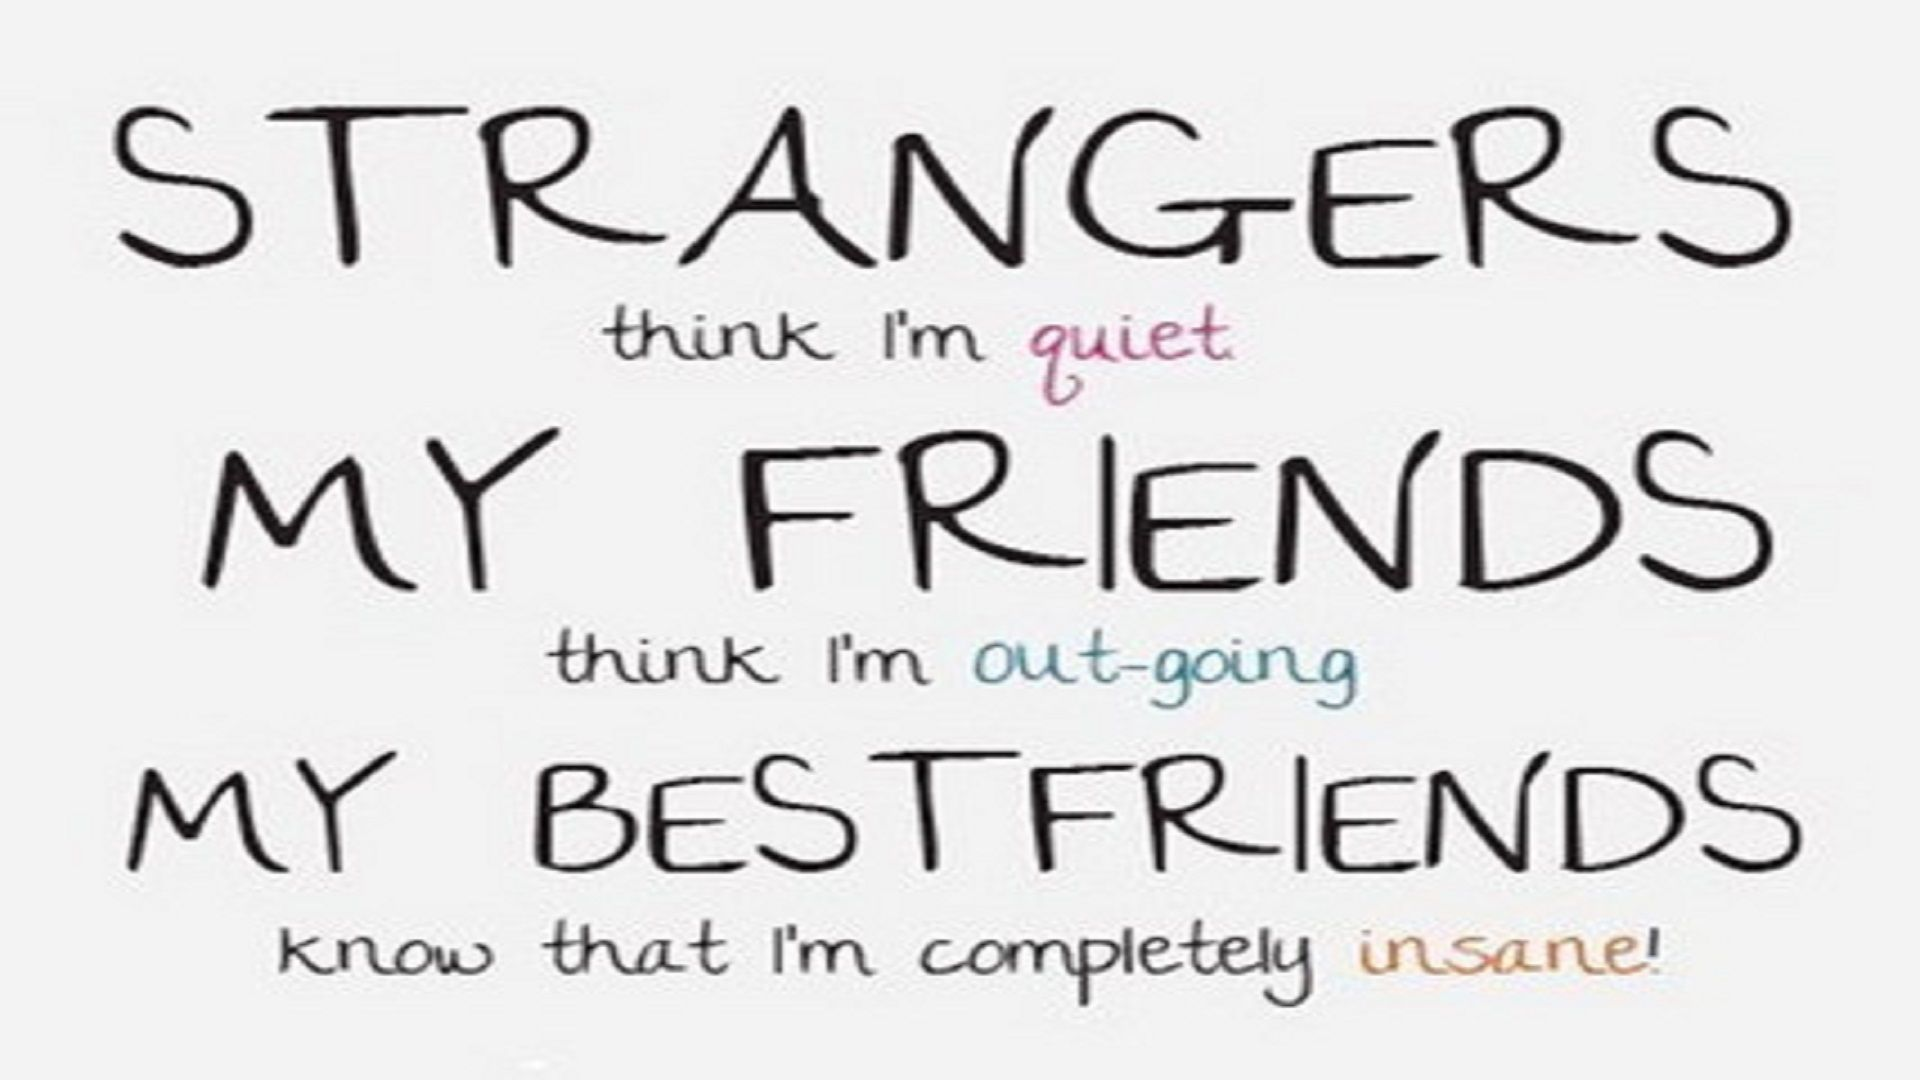 Funny Quotes About Friendship Free Hd Wallpapers Funny Quotes Wallpaper Funny Images With Quotes Funny Quotes